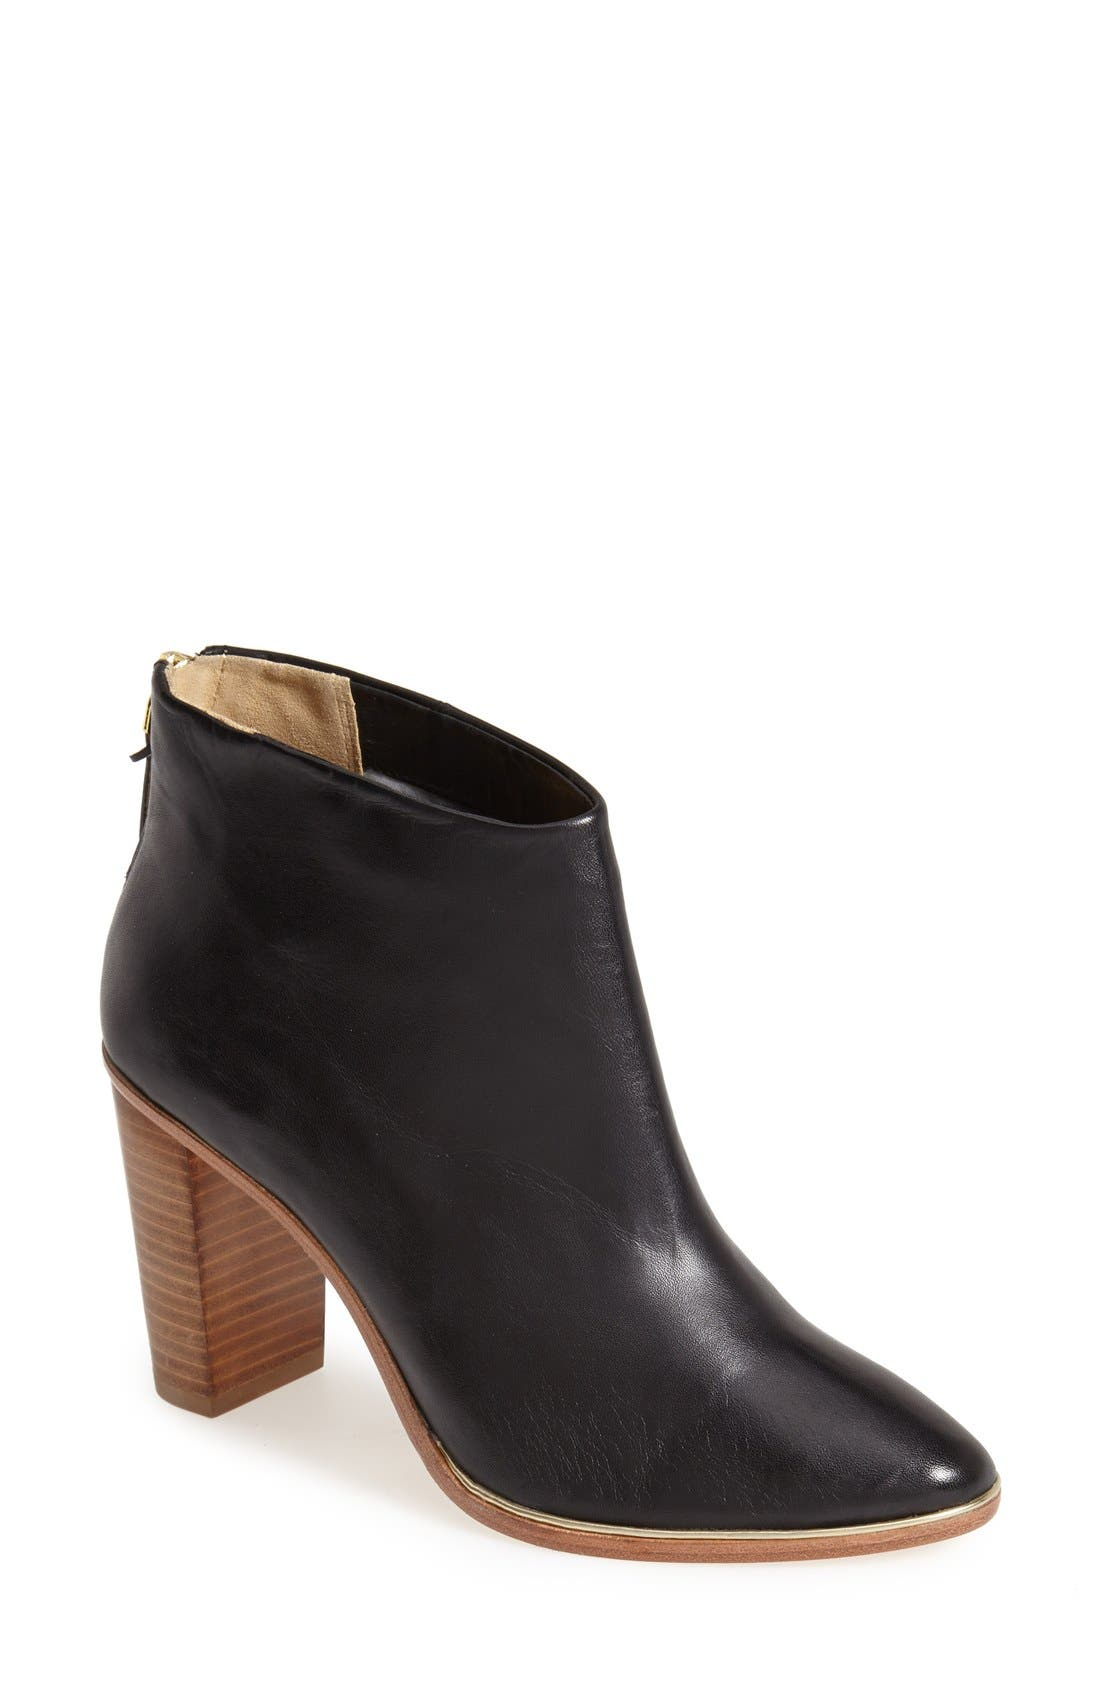 Main Image - Ted Baker London 'Lorca' Leather Bootie (Women)